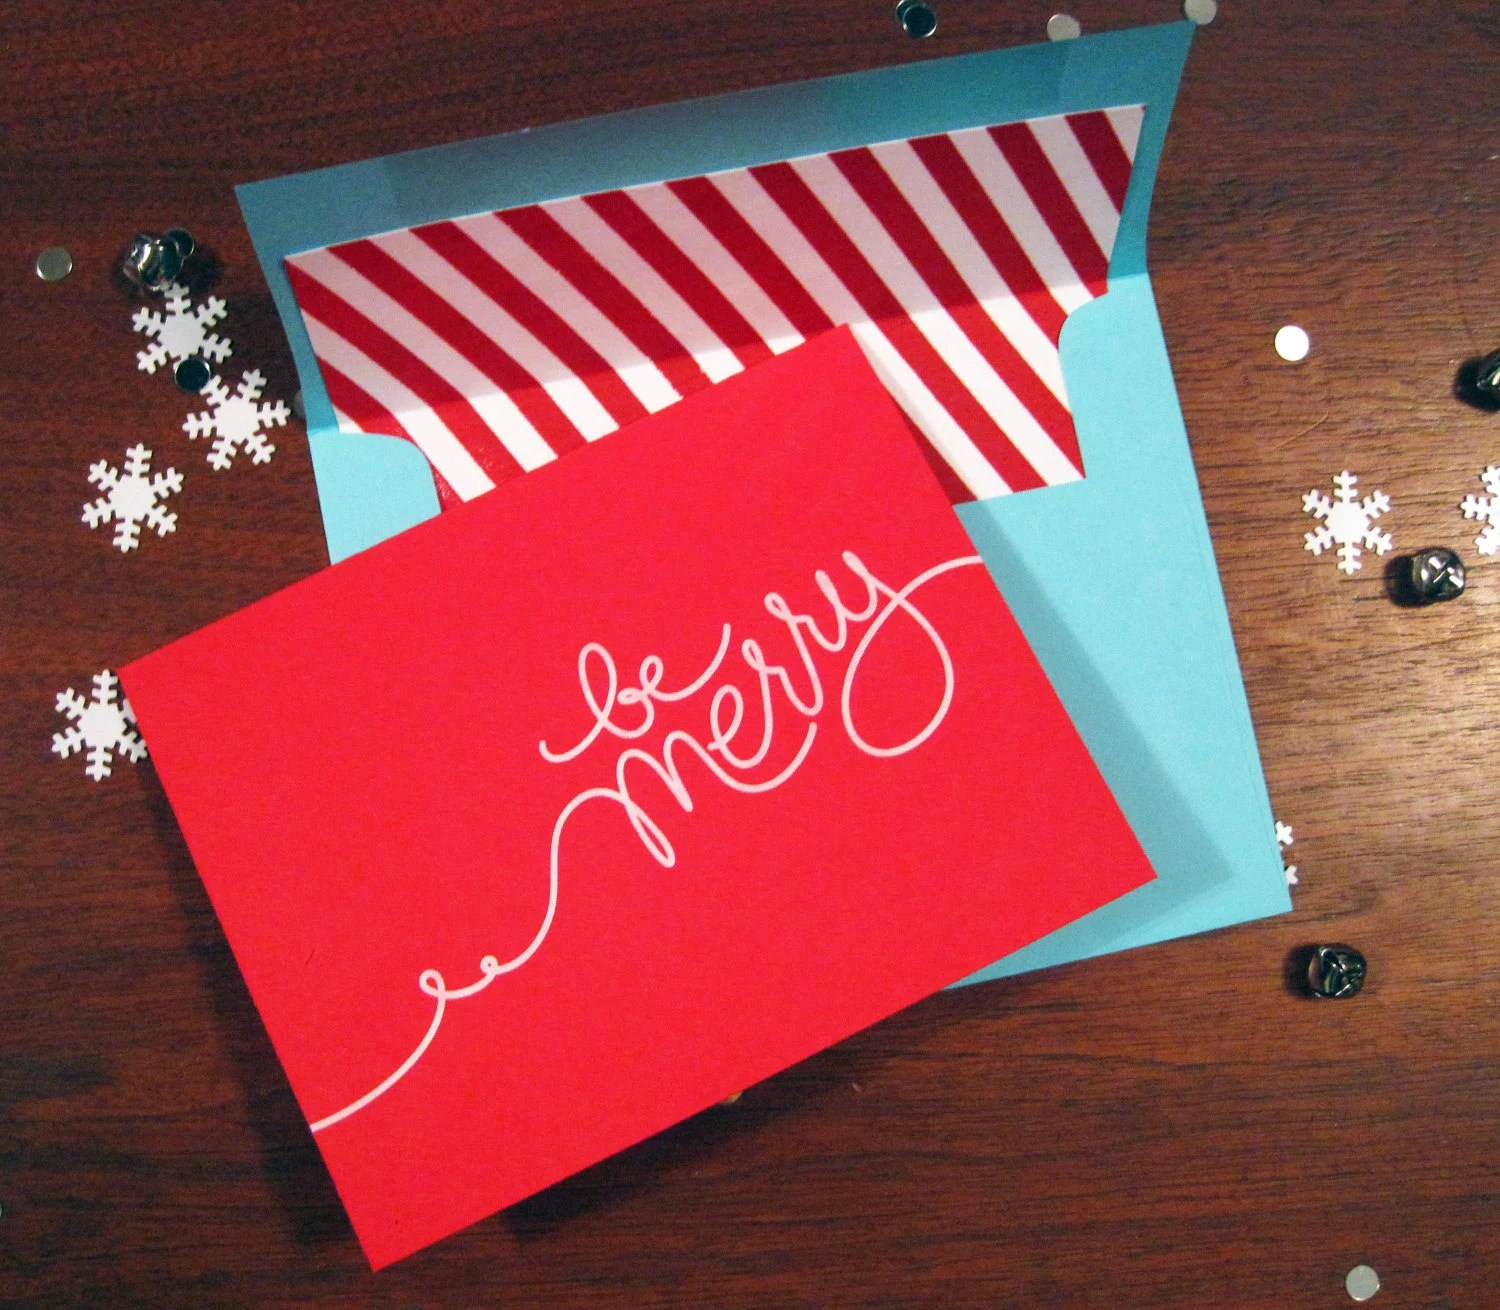 Be Merry holiday card (red/turquoise)